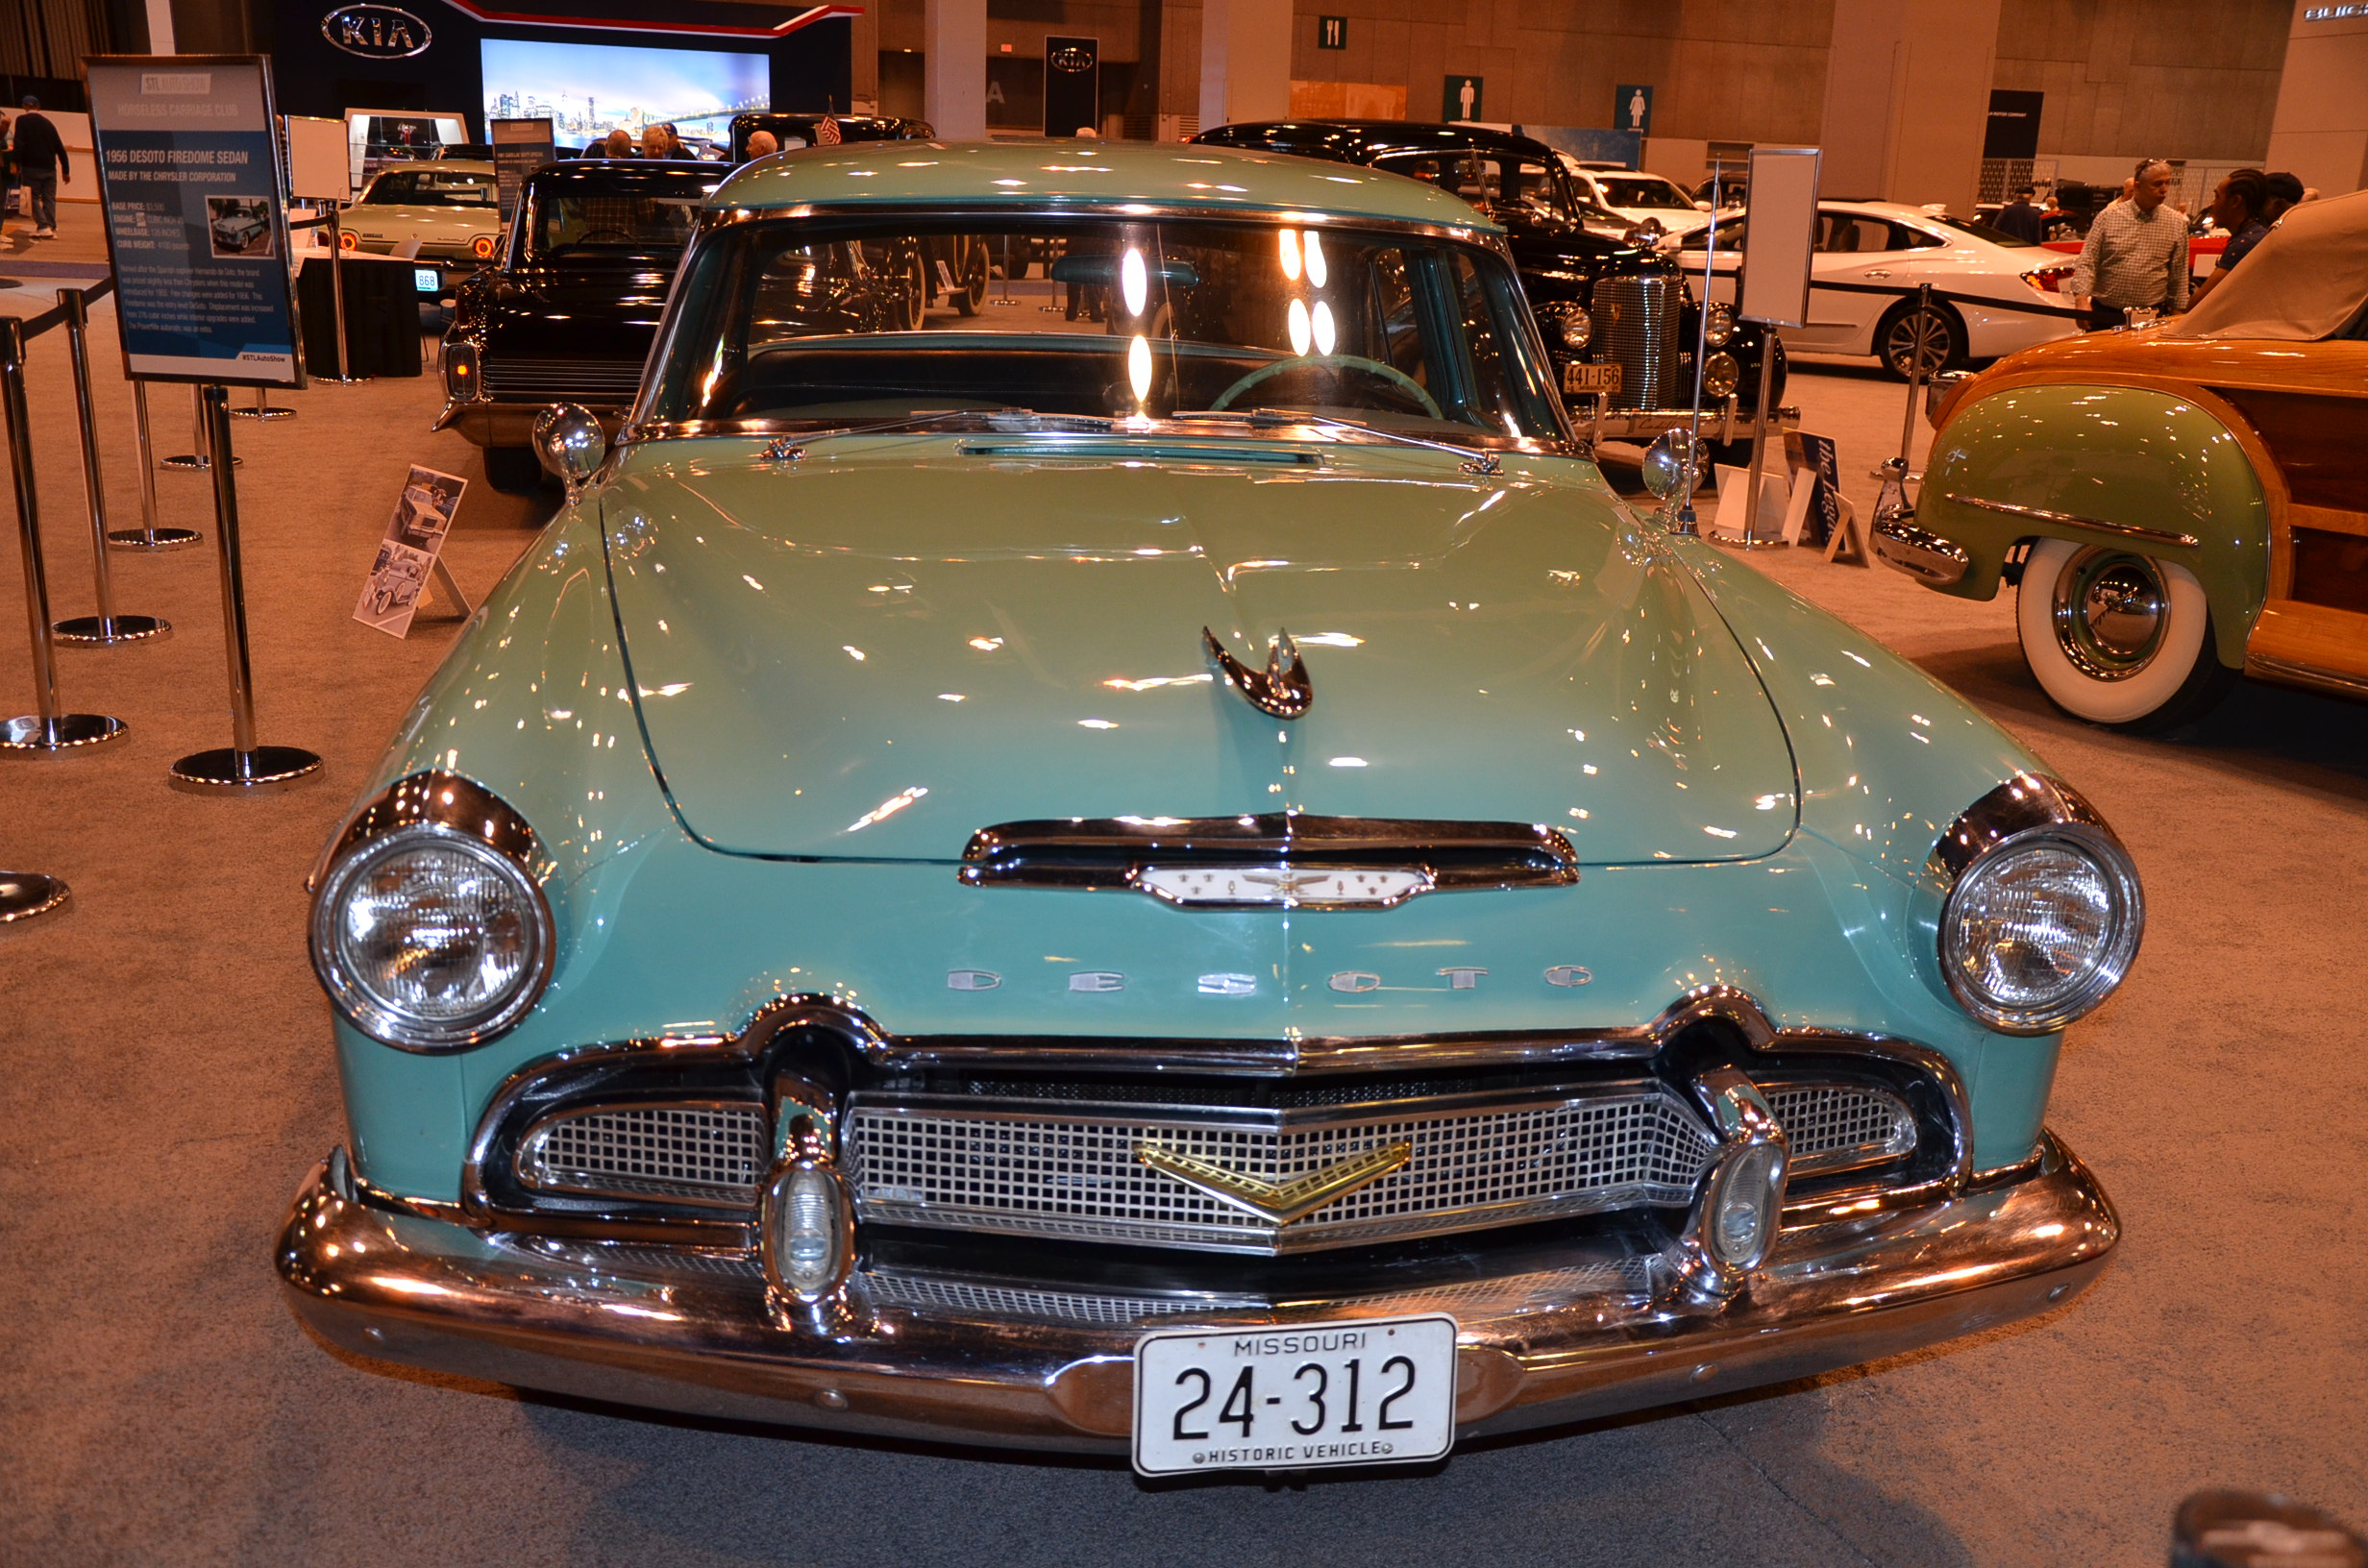 St Louis Auto Show 2018 Horseless Carriage Club